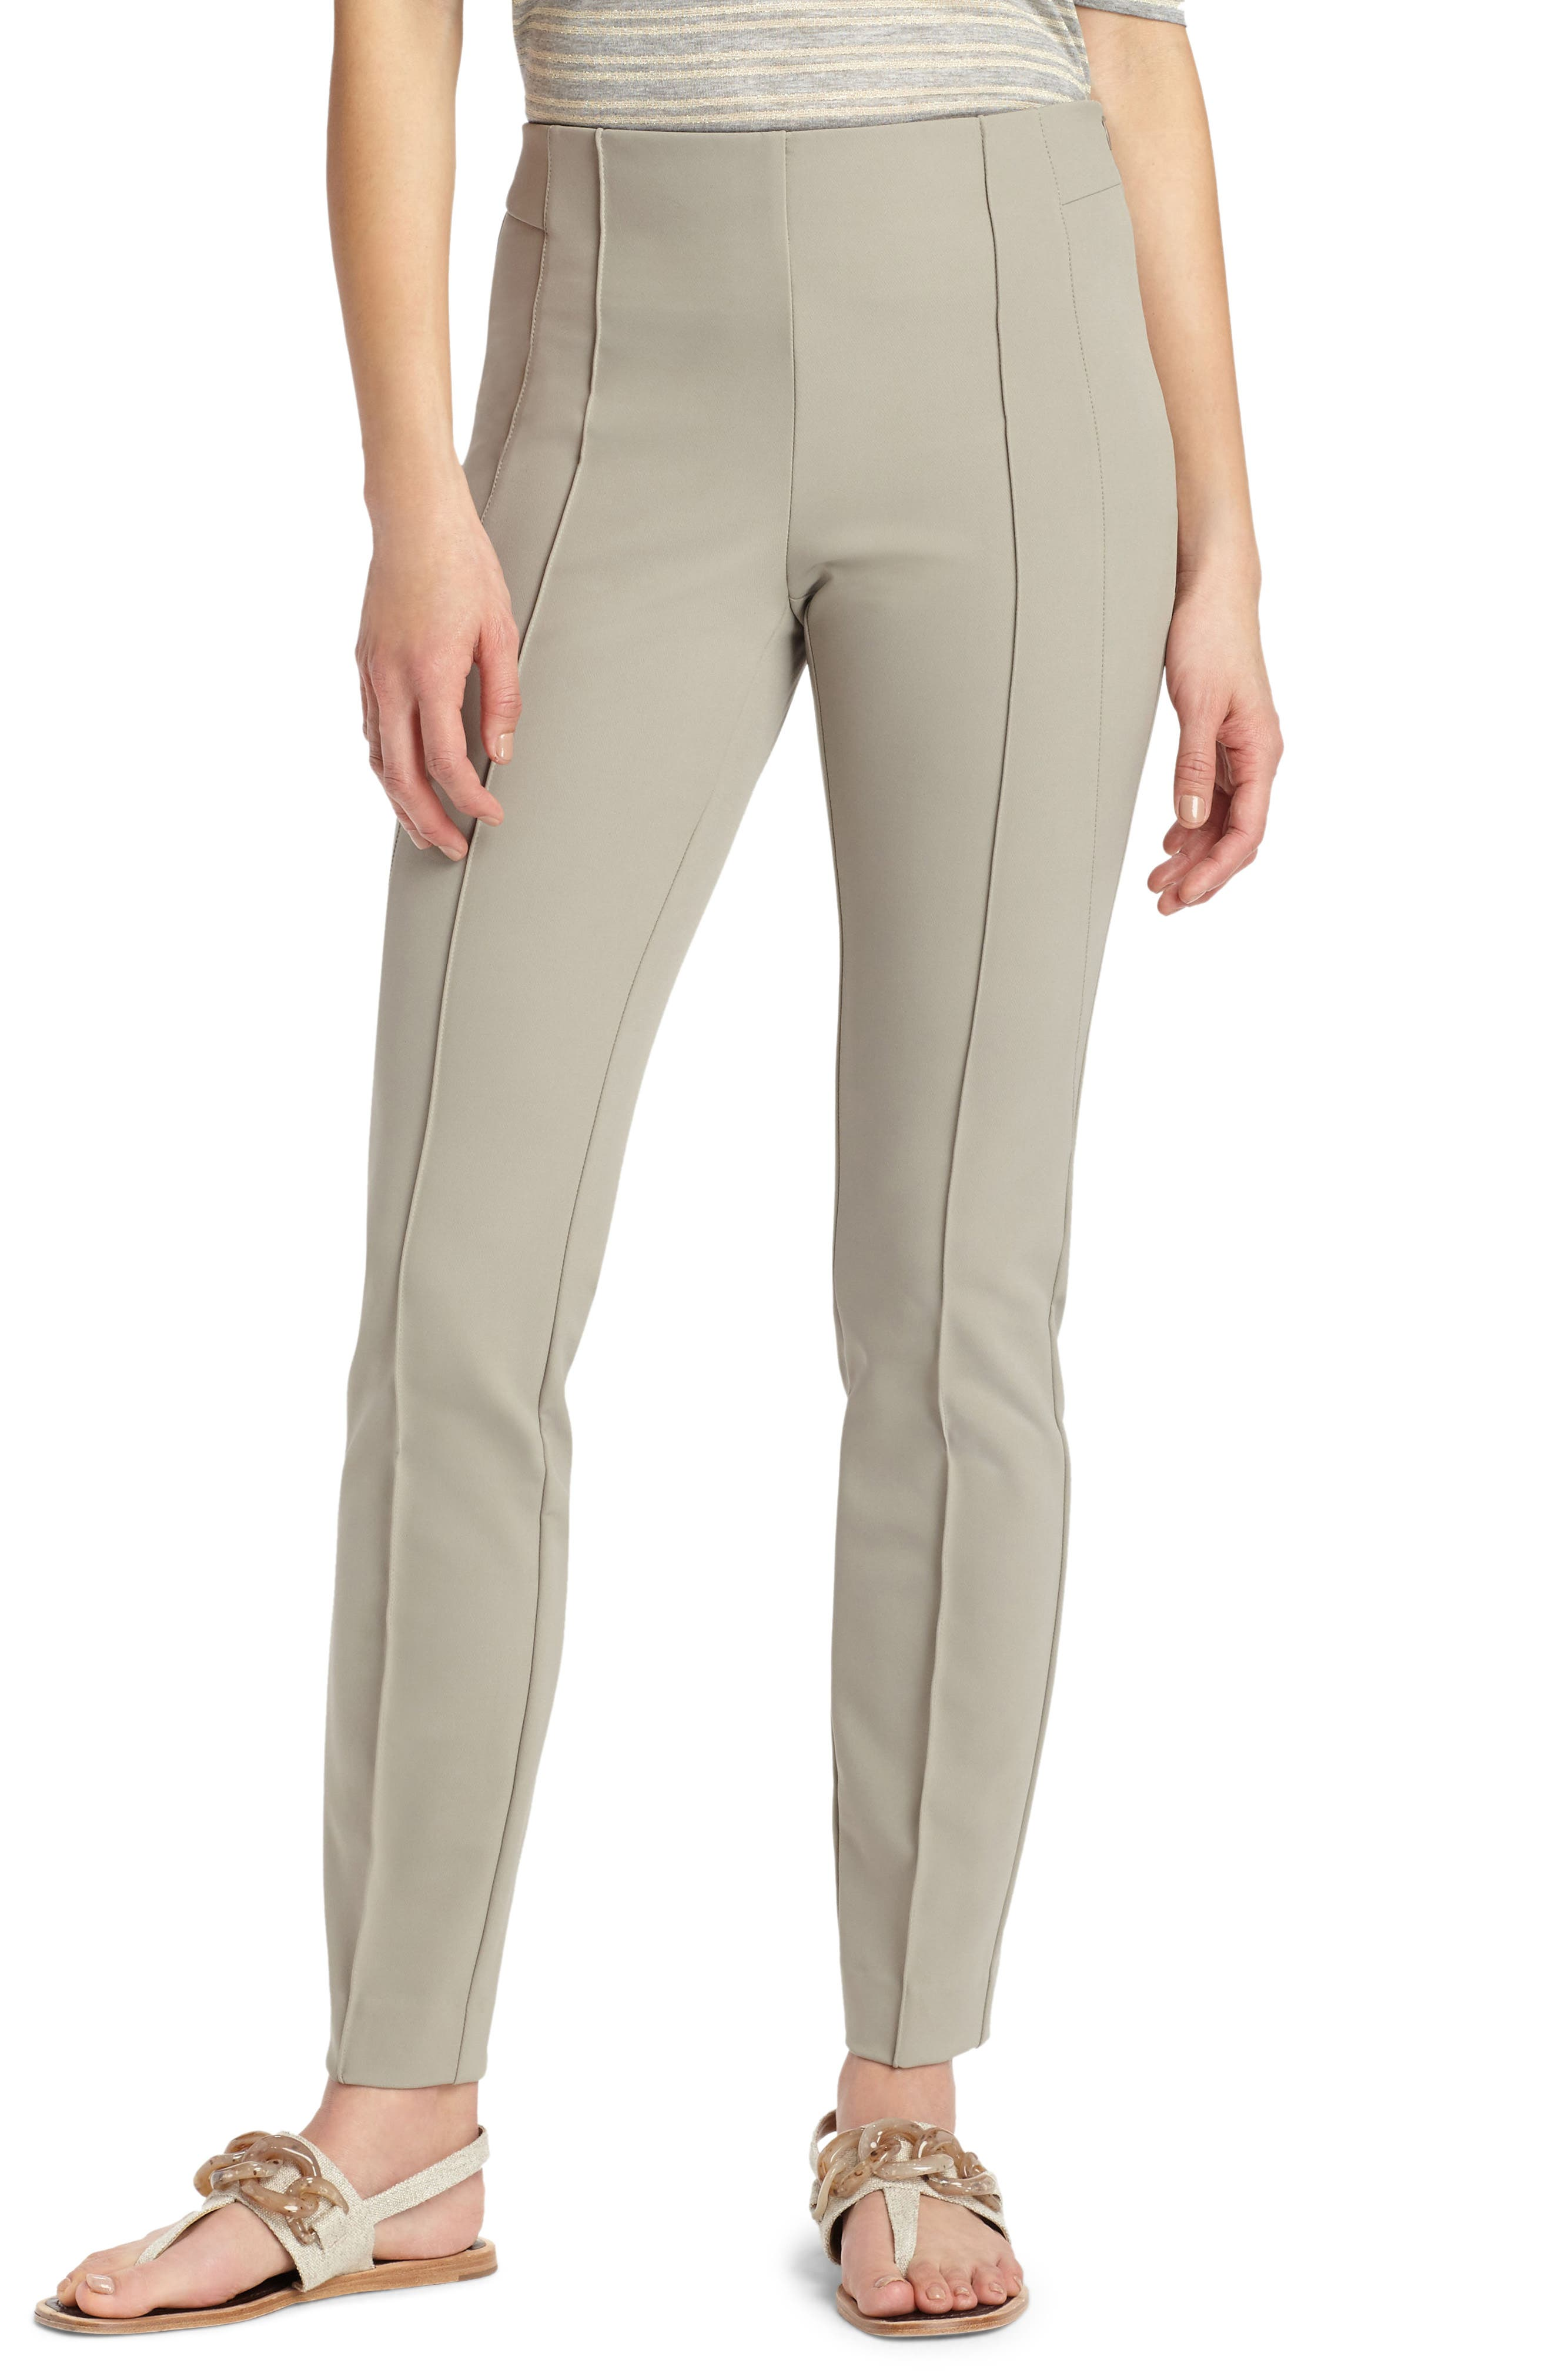 LAFAYETTE 148 NEW YORK, 'Gramercy' Acclaimed Stretch Pants, Main thumbnail 1, color, PARTRIDGE